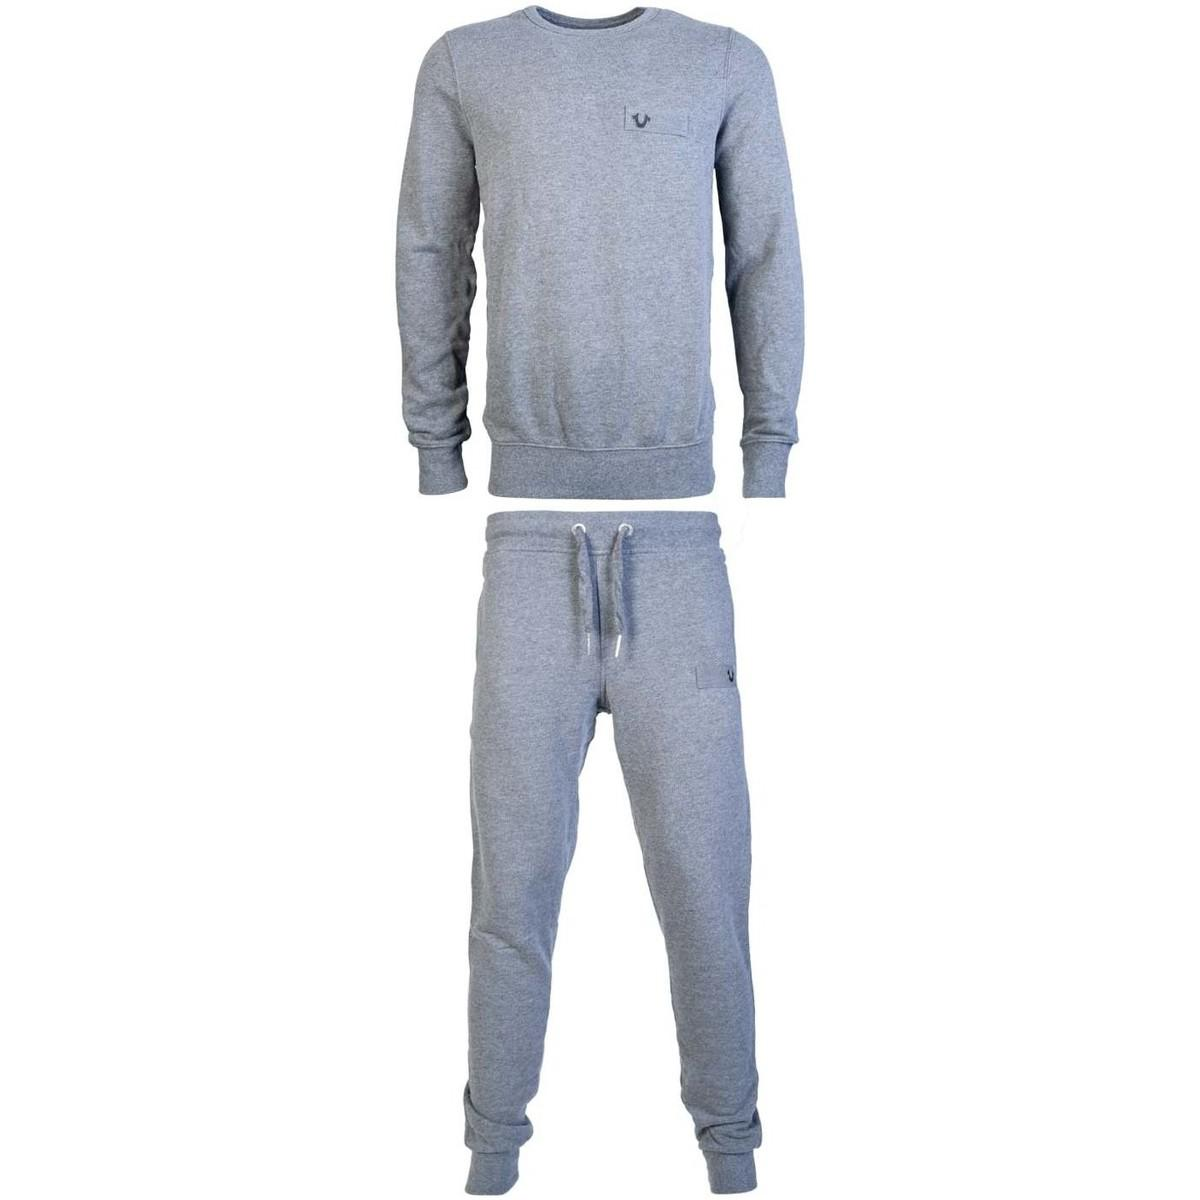 b5212534b7f True Religion Gray Tracksuit M16uf32d7g / M16uf31d7g Men's In Grey for men